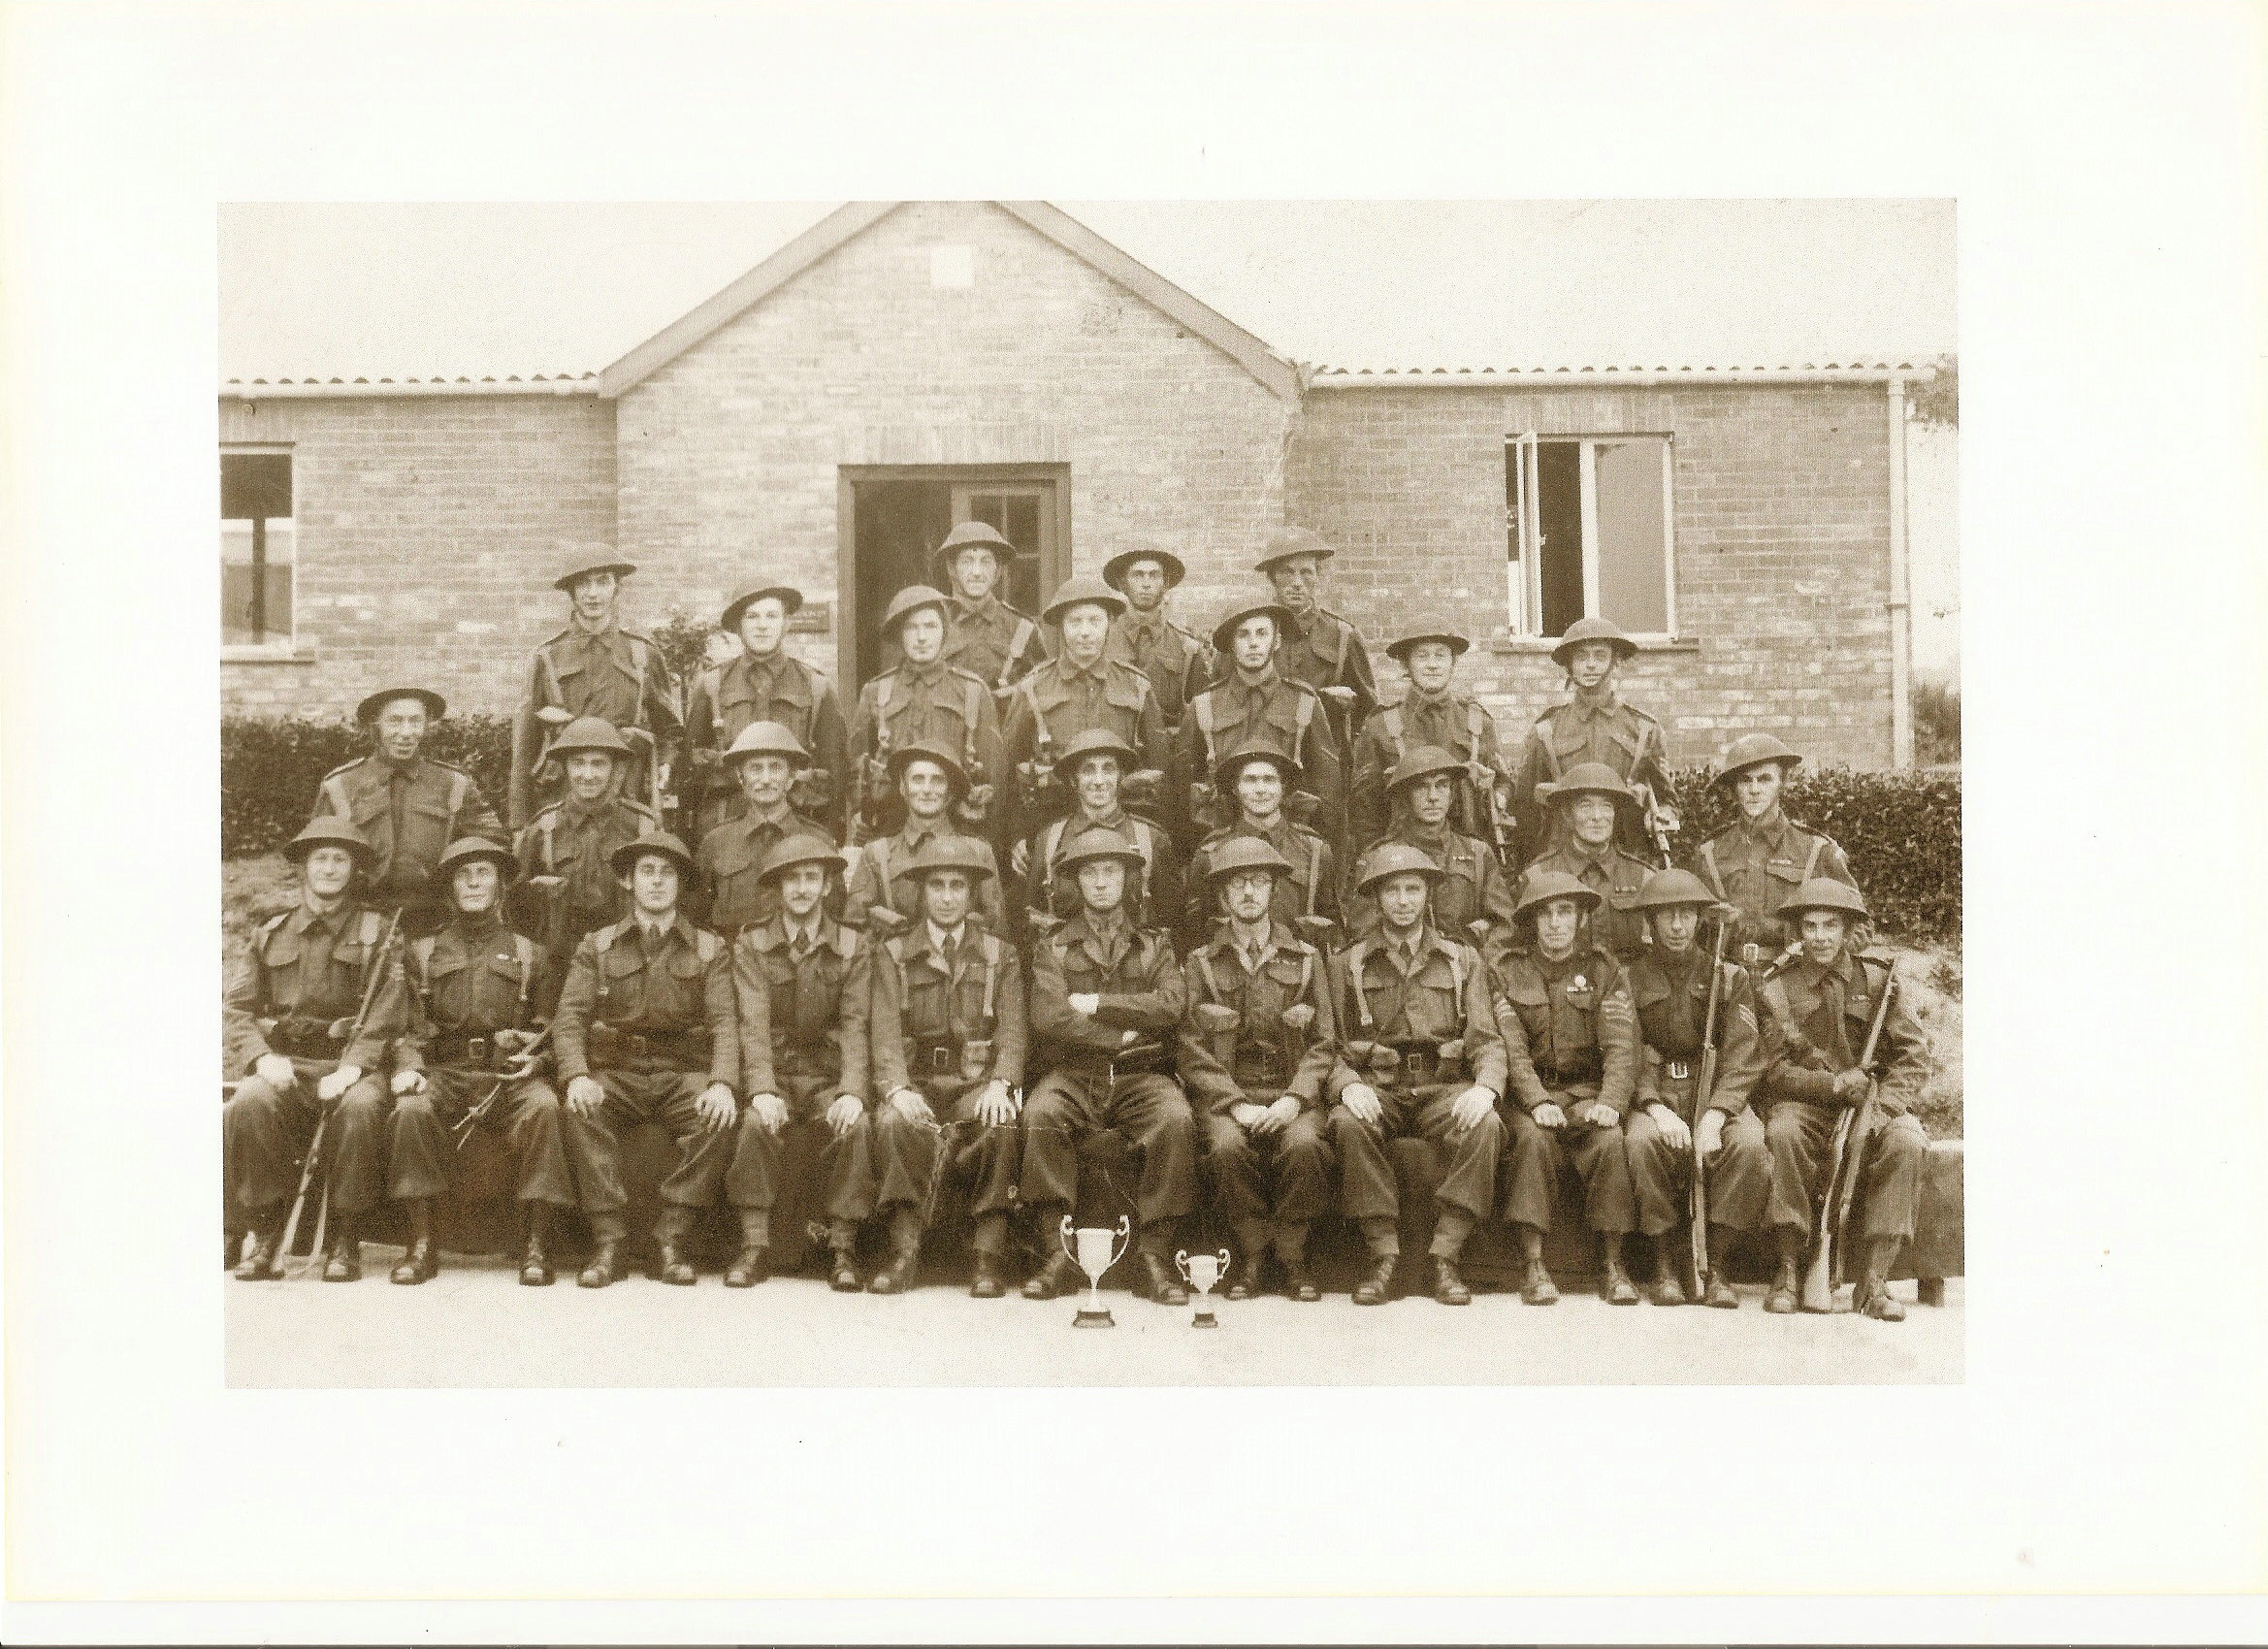 The photograph of the Dinedor Home Guard, believed to have been taken in the 1940s.